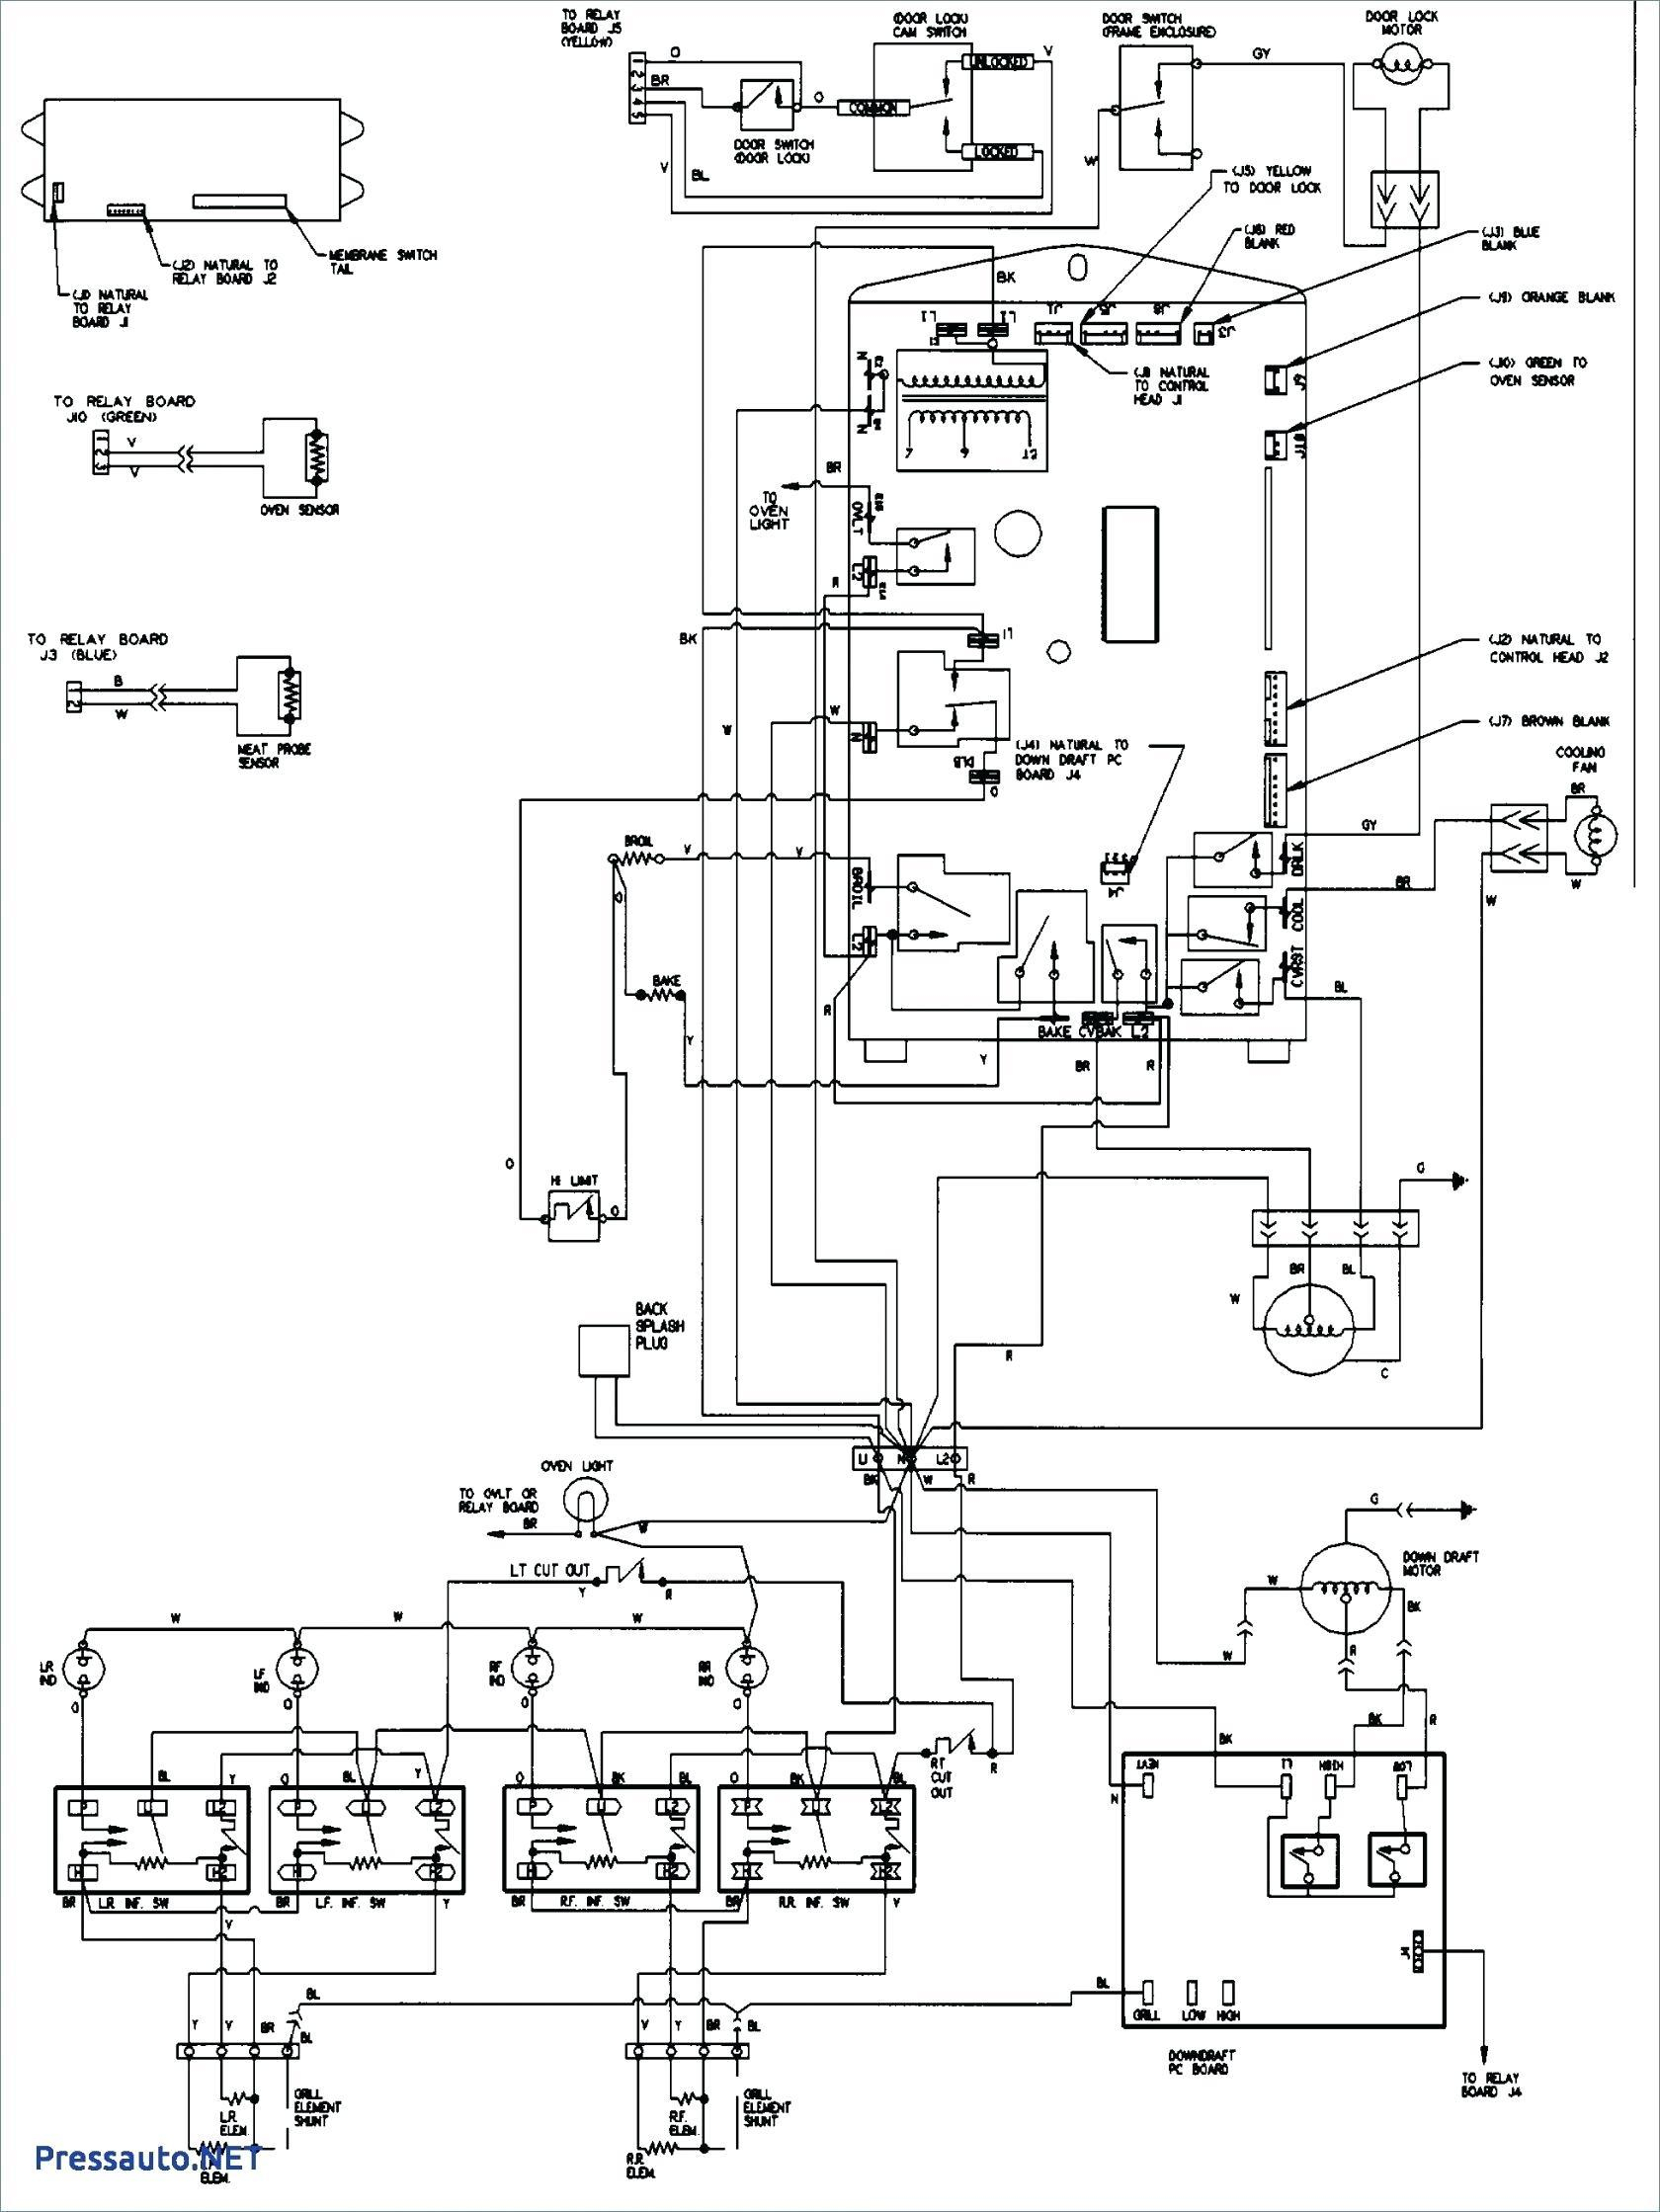 hight resolution of lennox signaturestat wiring diagram collection lennox ac thermostat wiring diagram free download wiring diagram 11